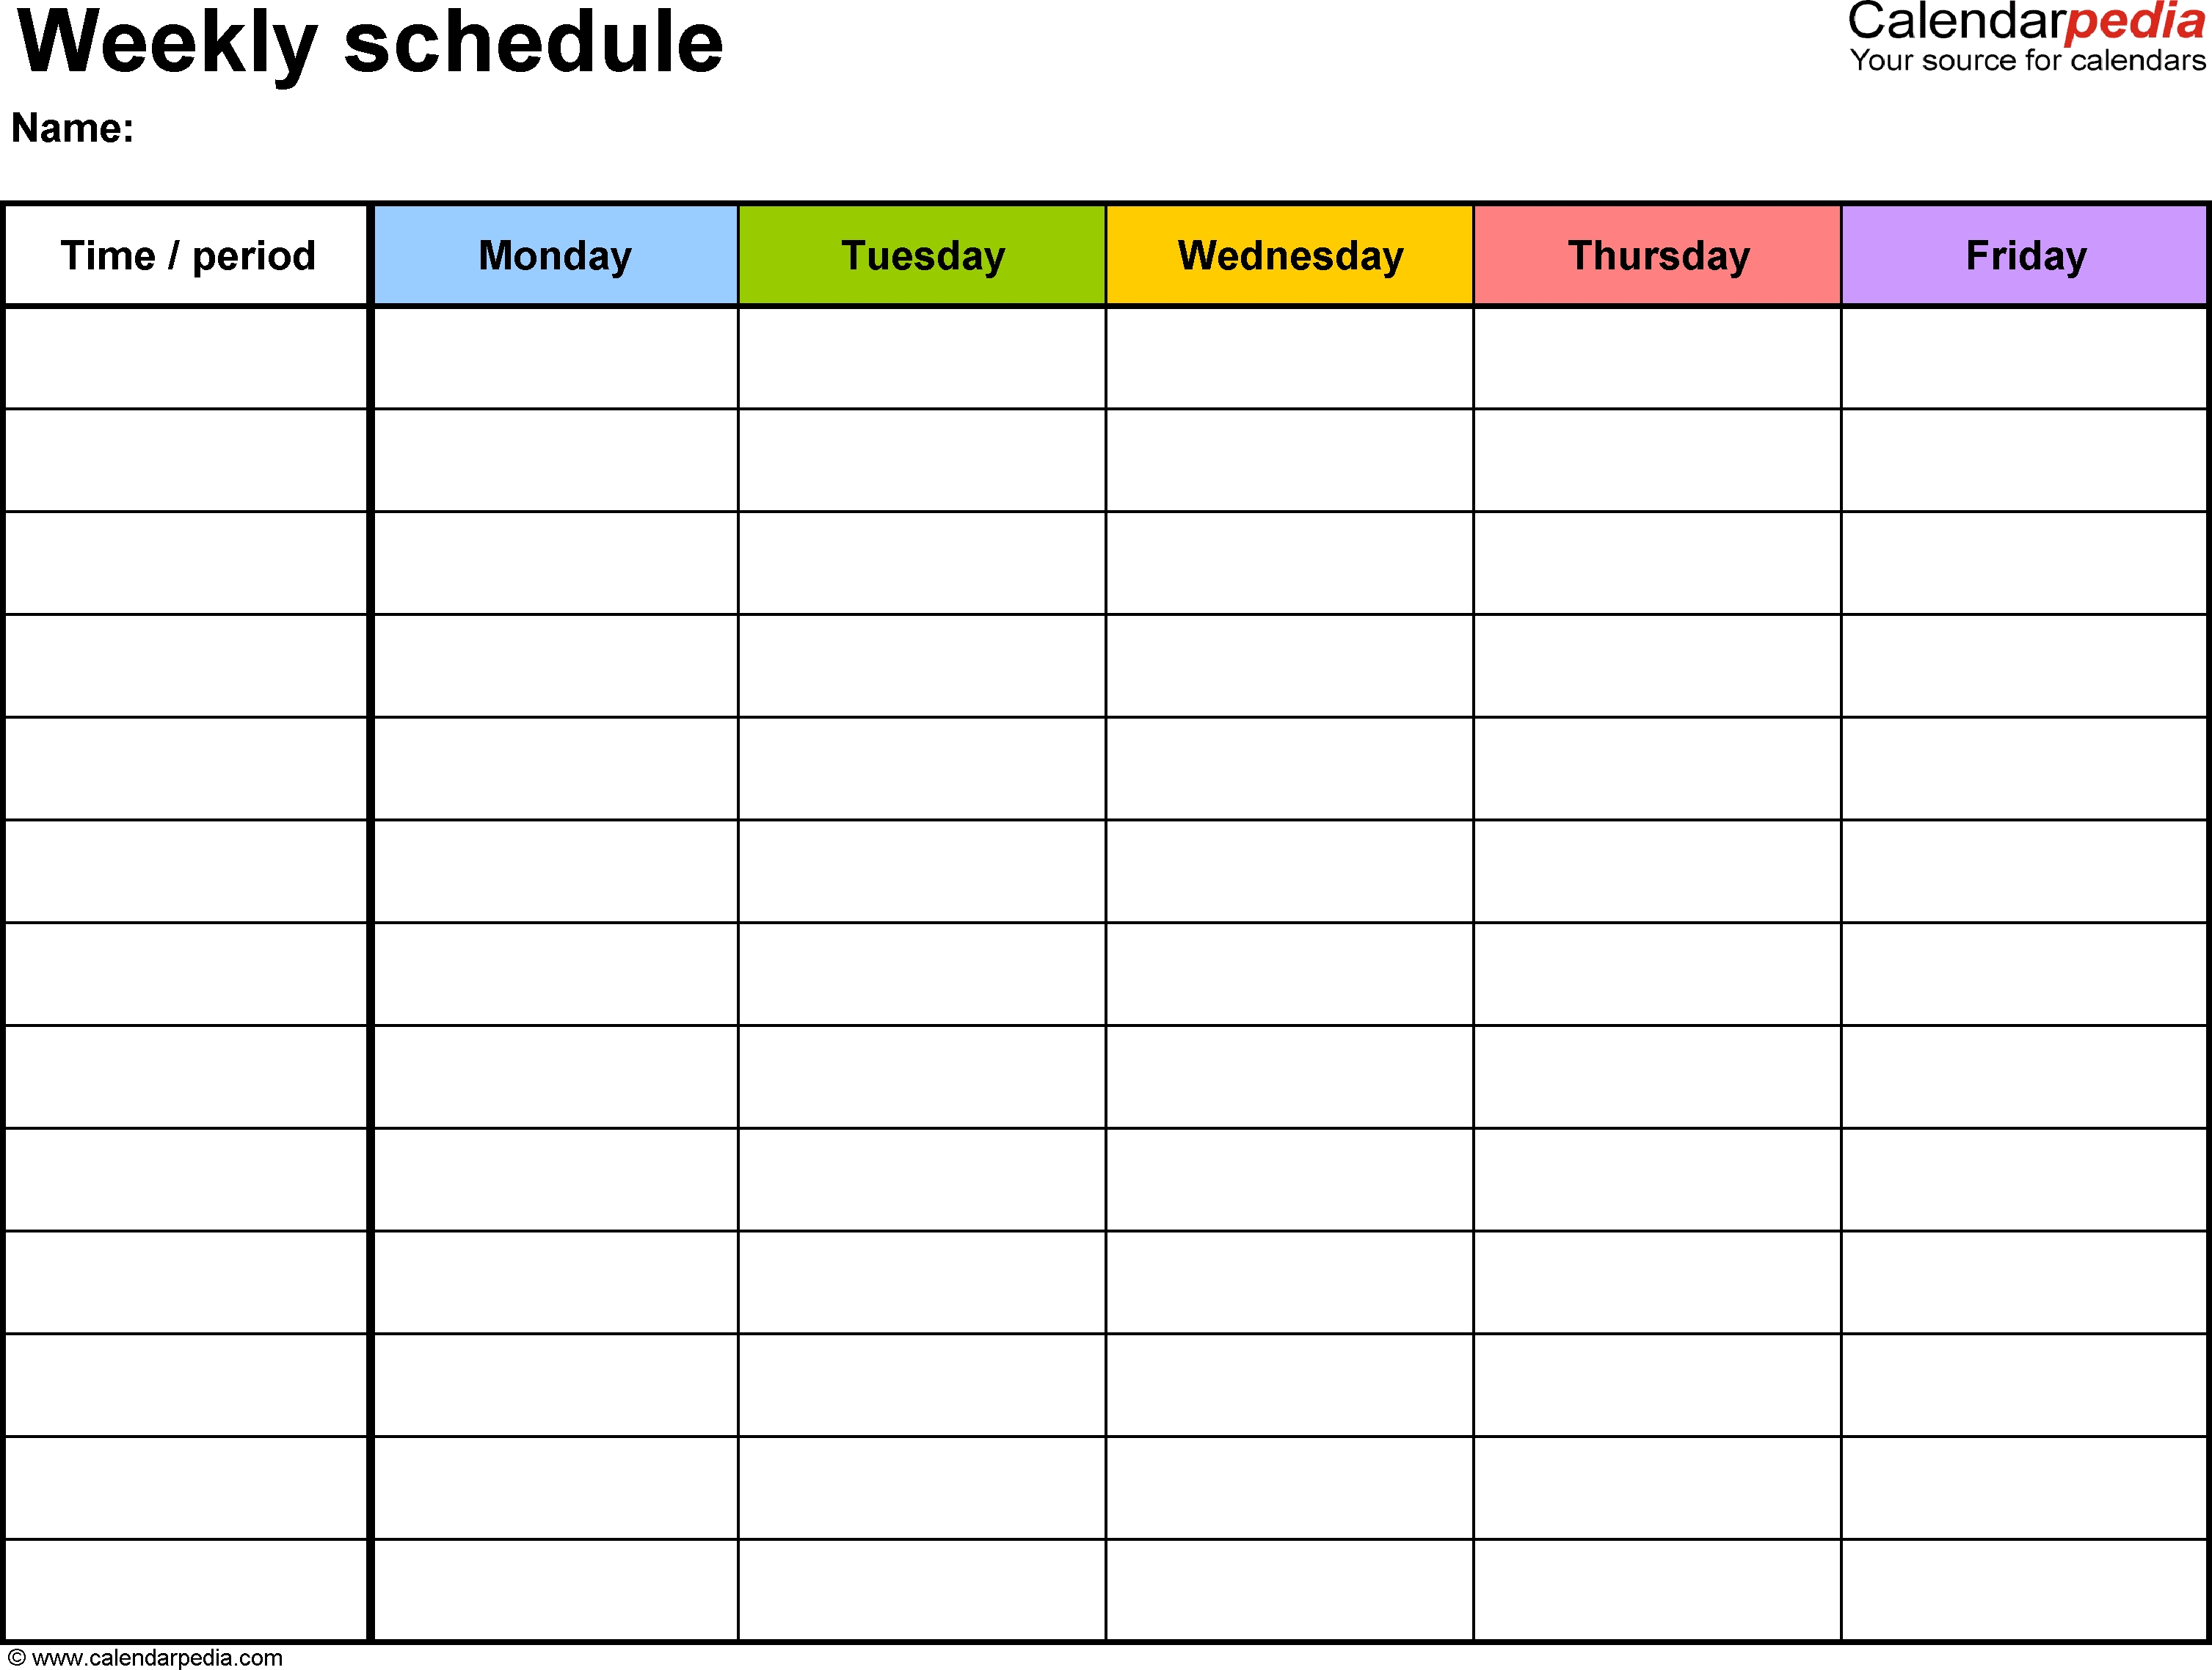 Weekly Schedule Template For Word Version 1: Landscape, 1-Monday To Sunday Calendar Template Writing Practice